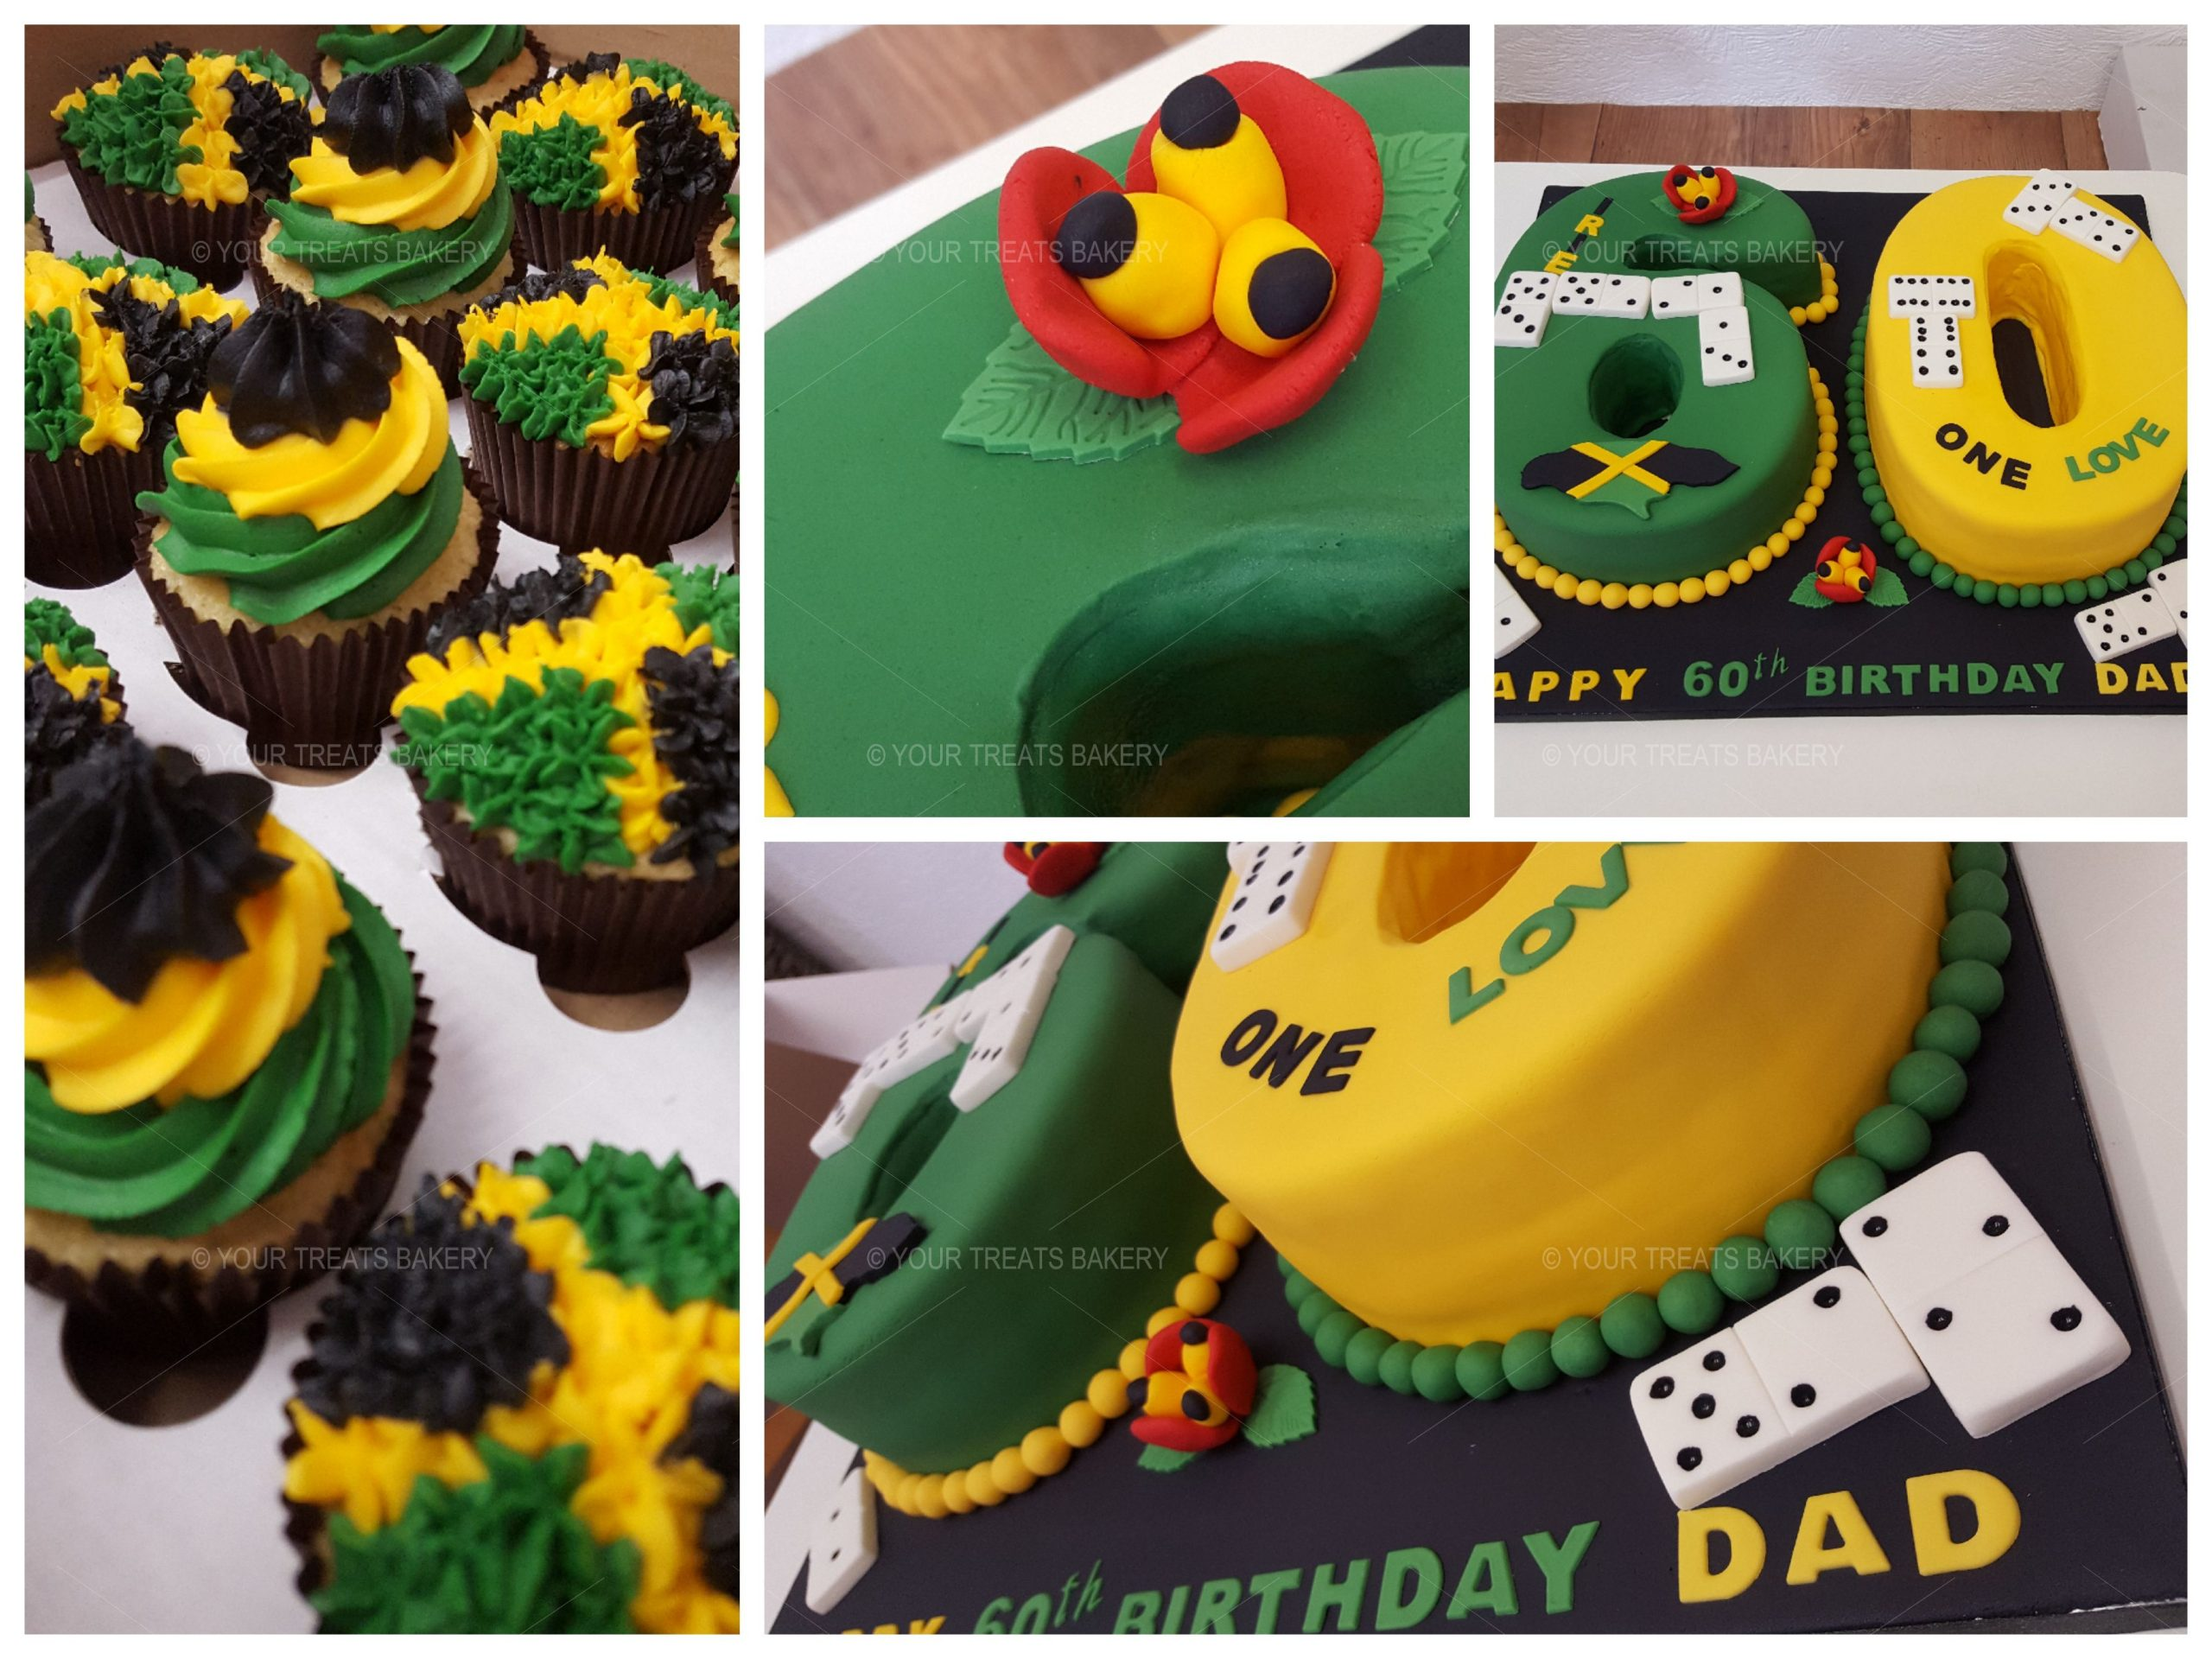 Pleasant Number 60 Jamaican Cake Your Treats Bakery Personalised Birthday Cards Paralily Jamesorg